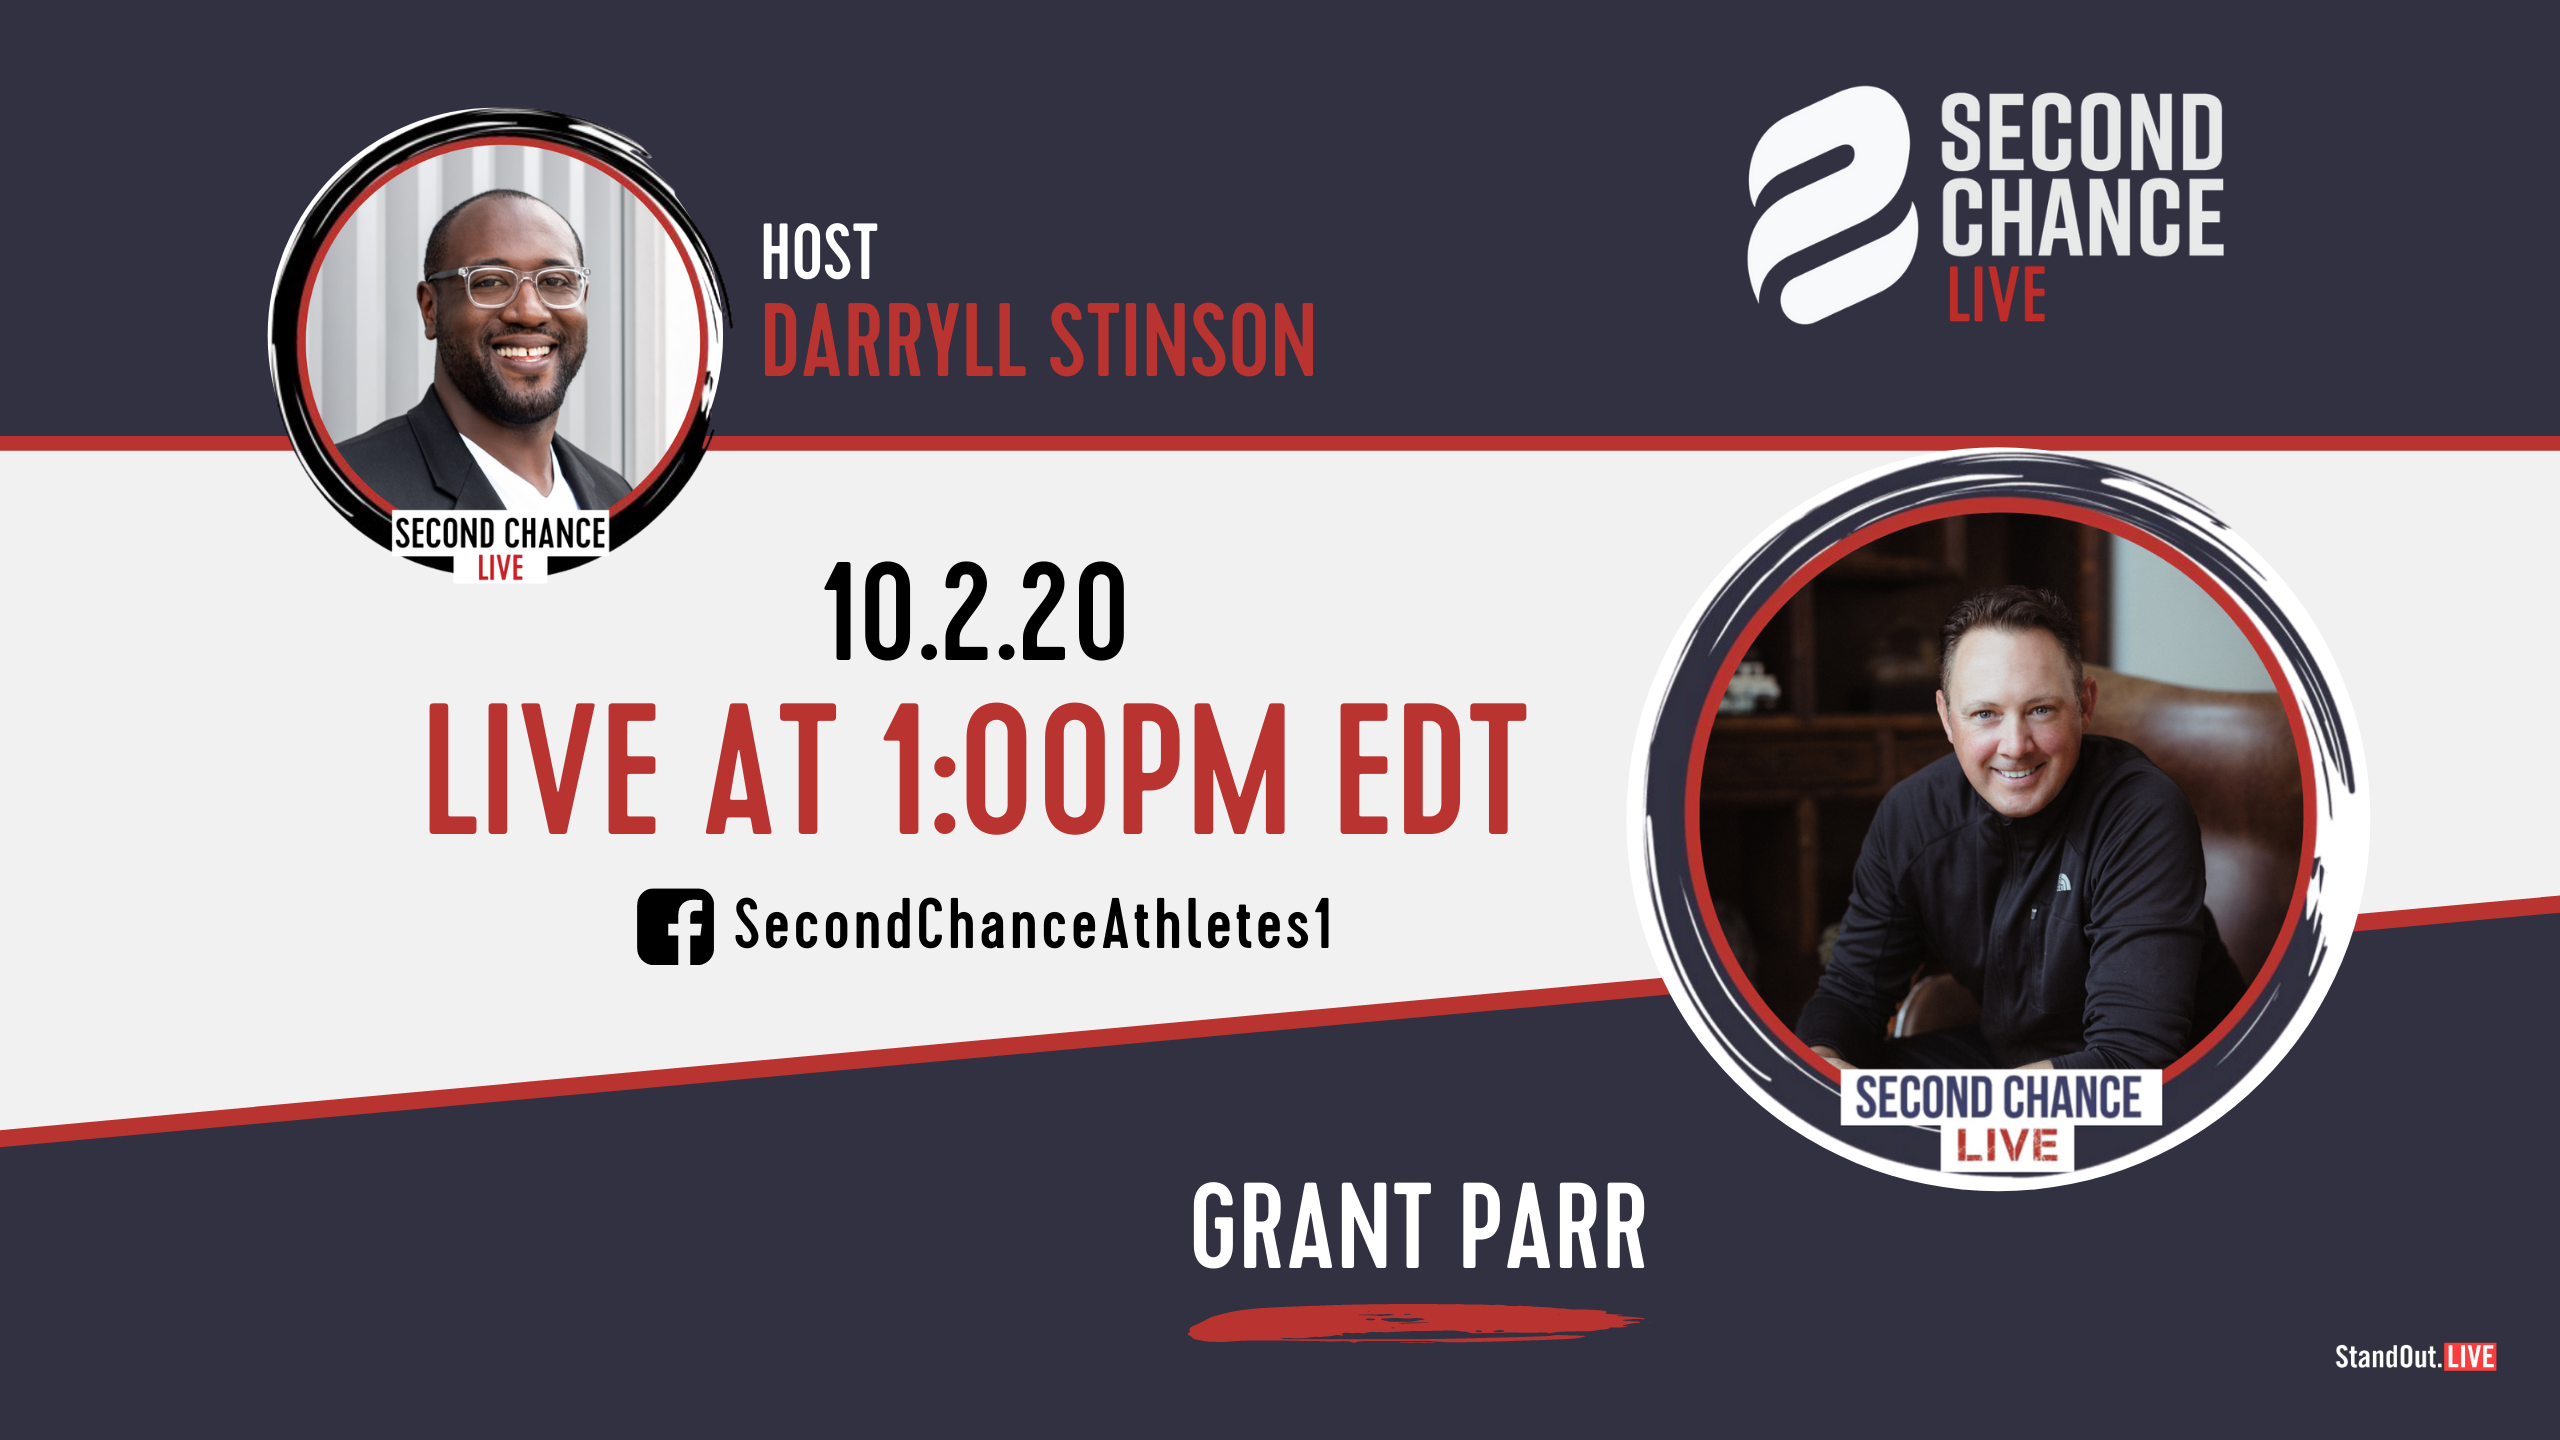 Second Chance LIVE -with Grant Parr